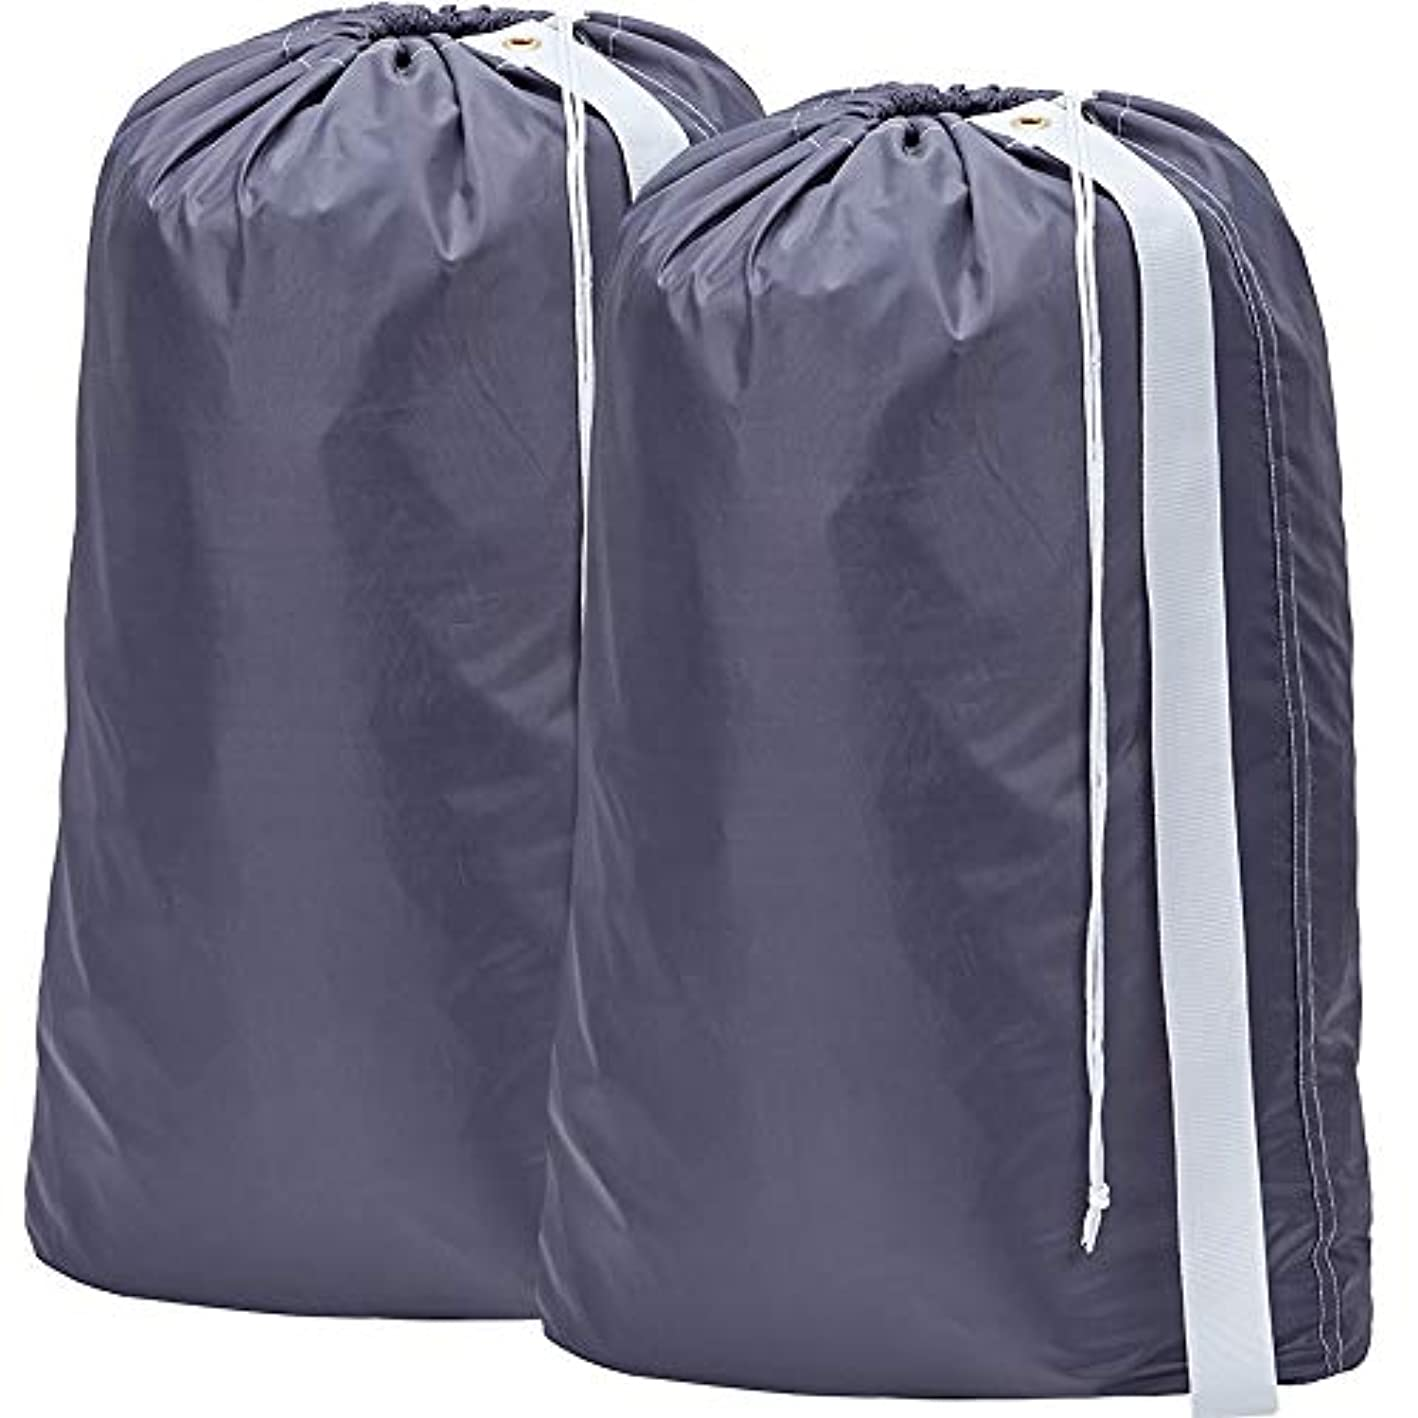 HOMEST 2 Pack Nylon Laundry Bag with Strap, 28